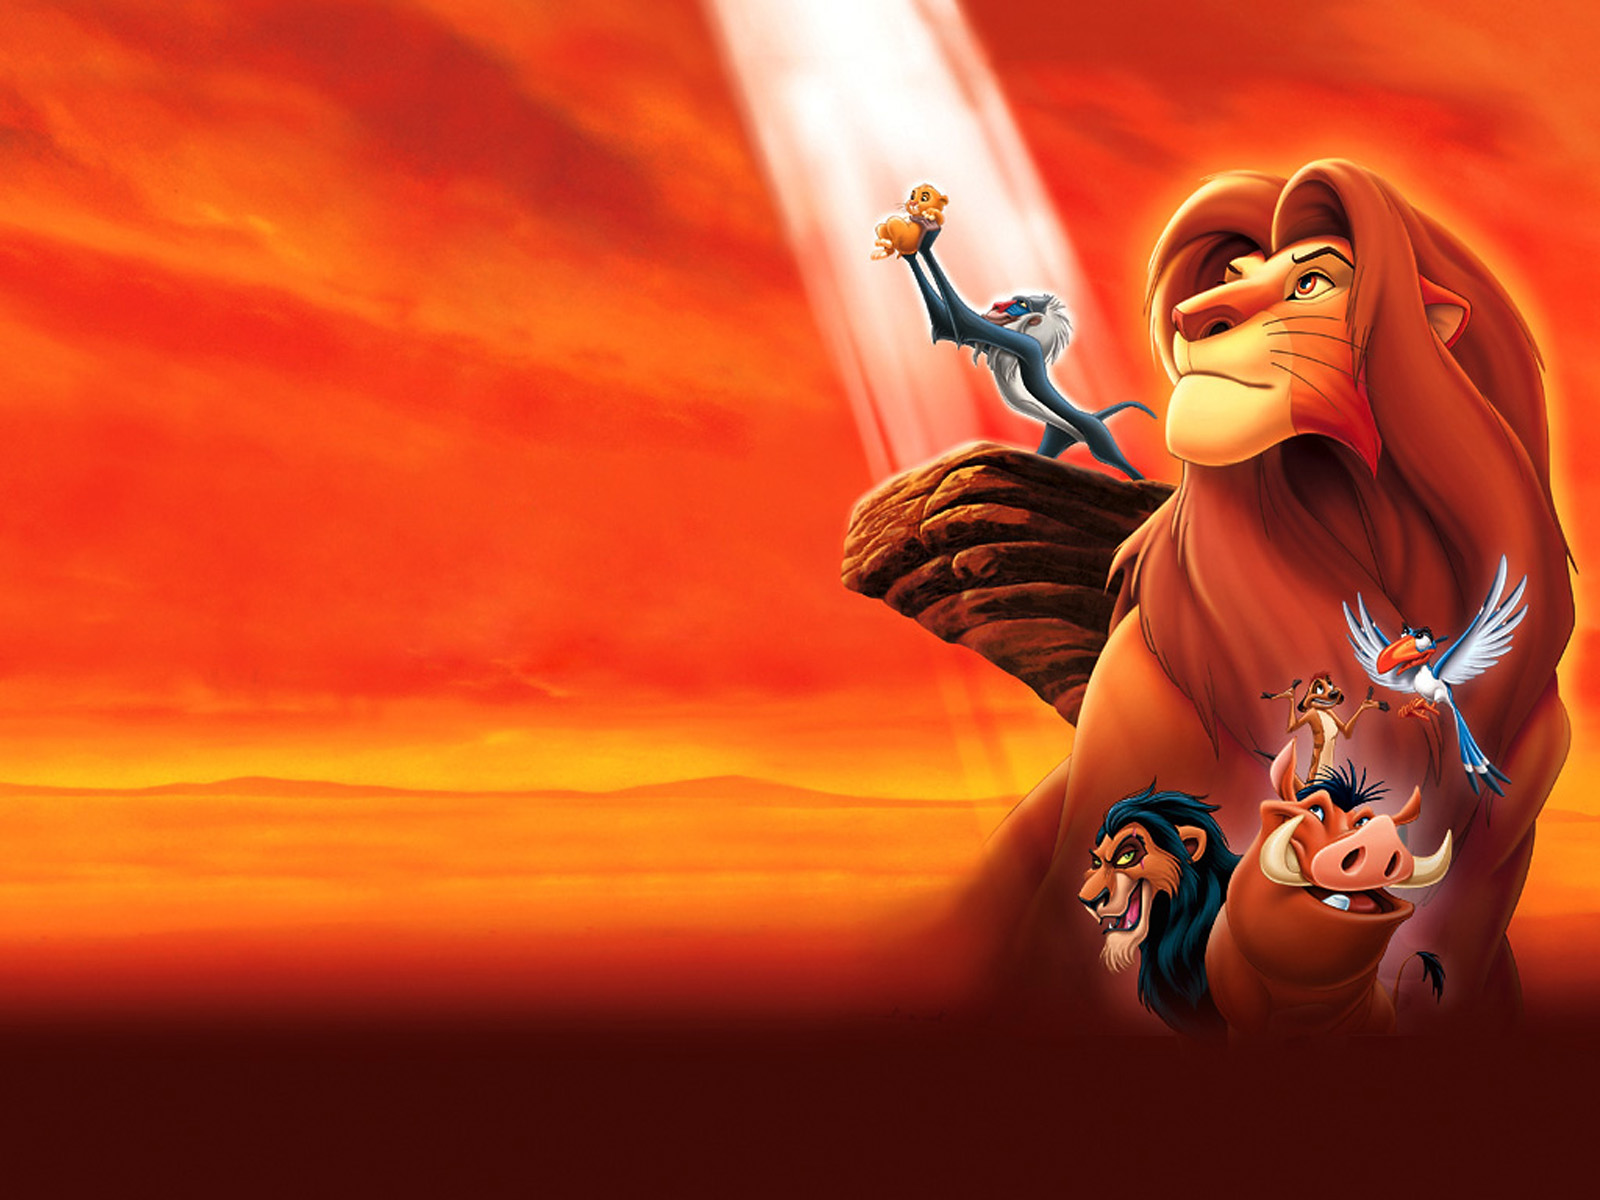 The Lion King 3D Wallpaper 1600x1200 Wallpapers 1600x1200 Wallpapers 1600x1200